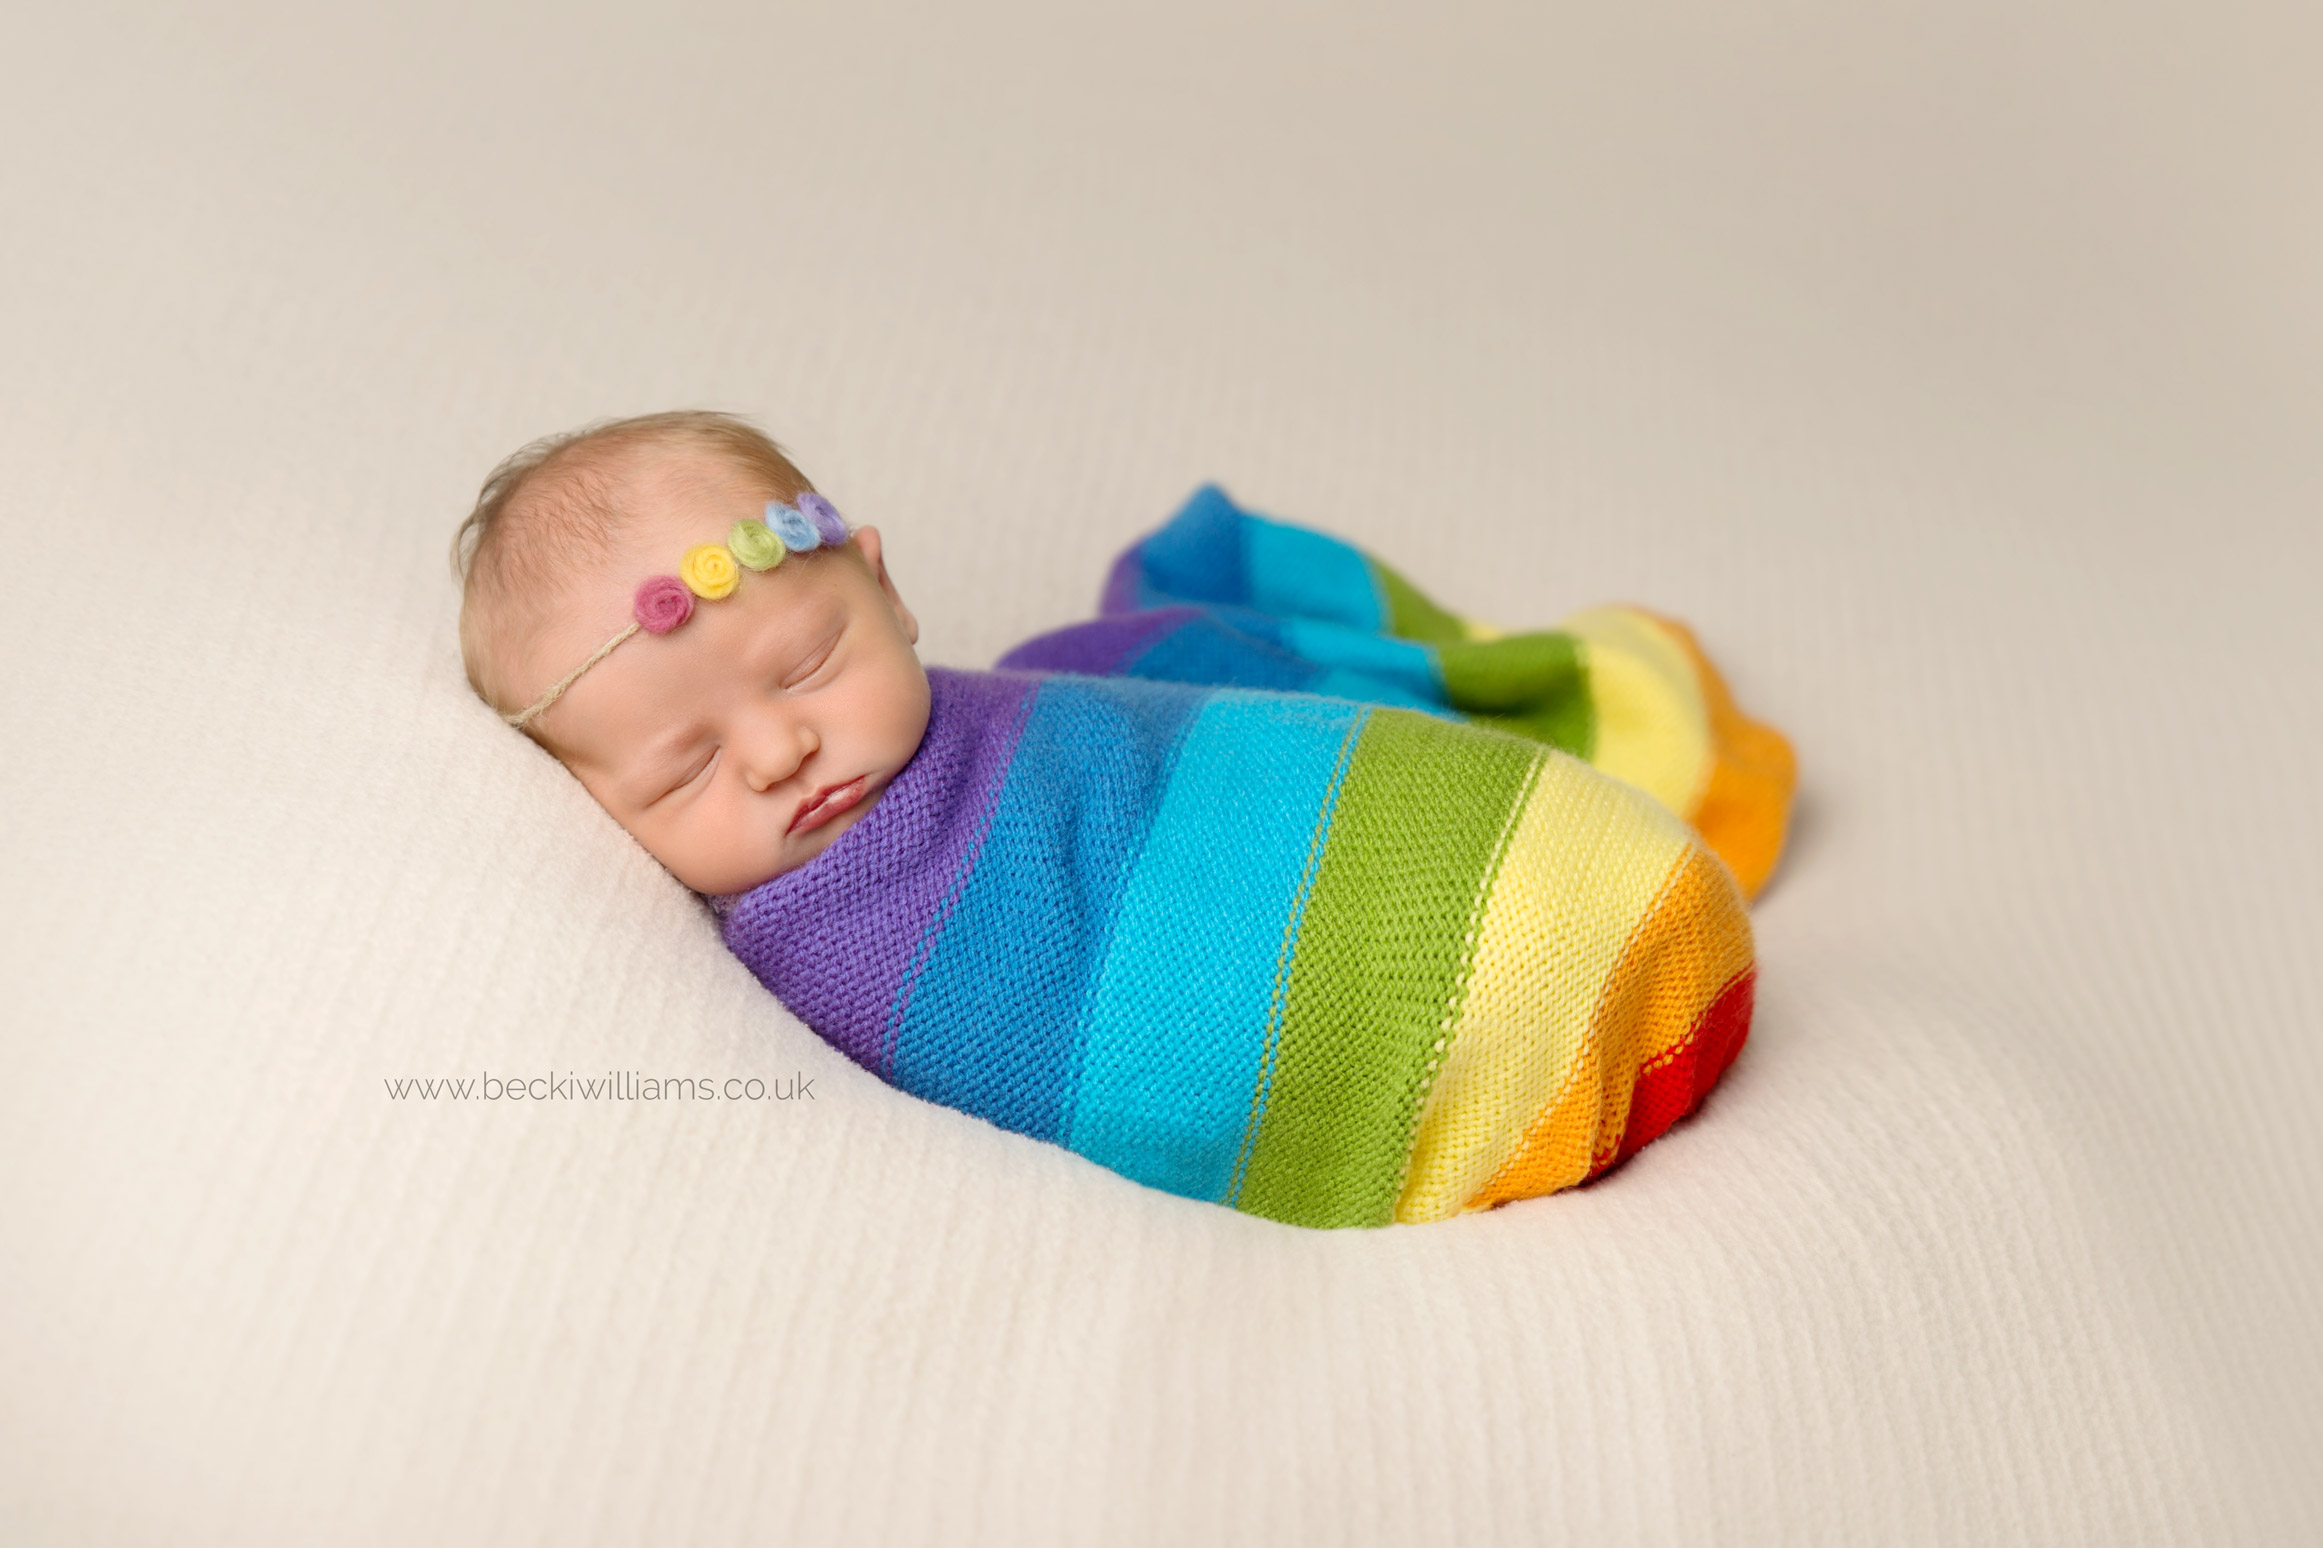 newborn baby wrapped in a striped, mulit-coloured blanket and wear a colourful headband